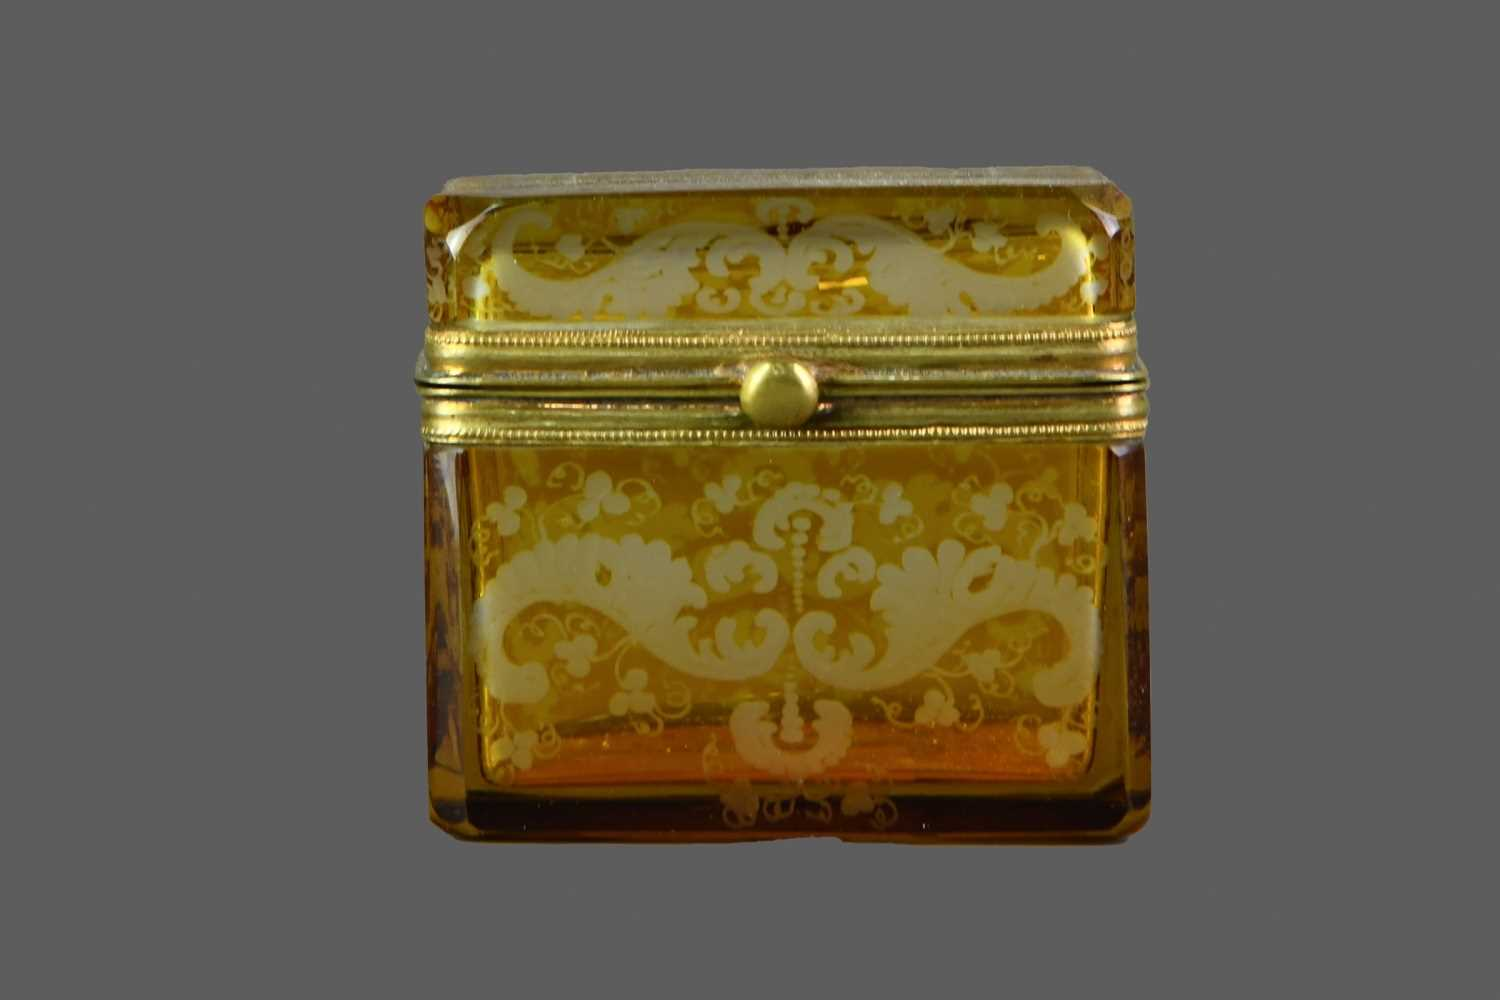 Lot 52 - A LATE 19TH CENTURY BOHEMIAN AMBER FLASHED GLASS CASKET